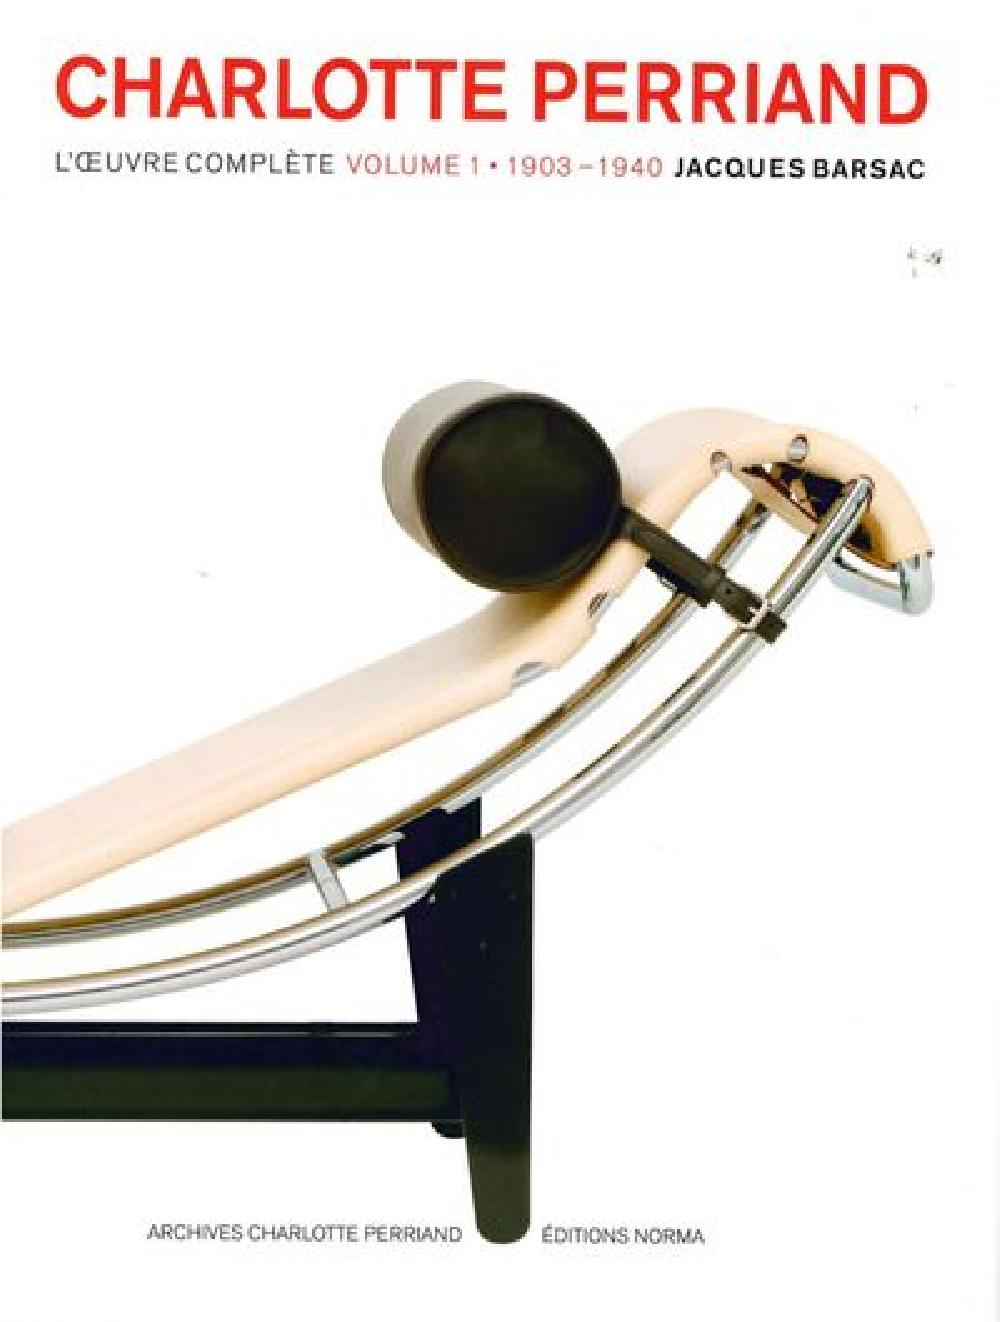 Charlotte Perriand - L'oeuvre complète Volume 1, 1903-1940